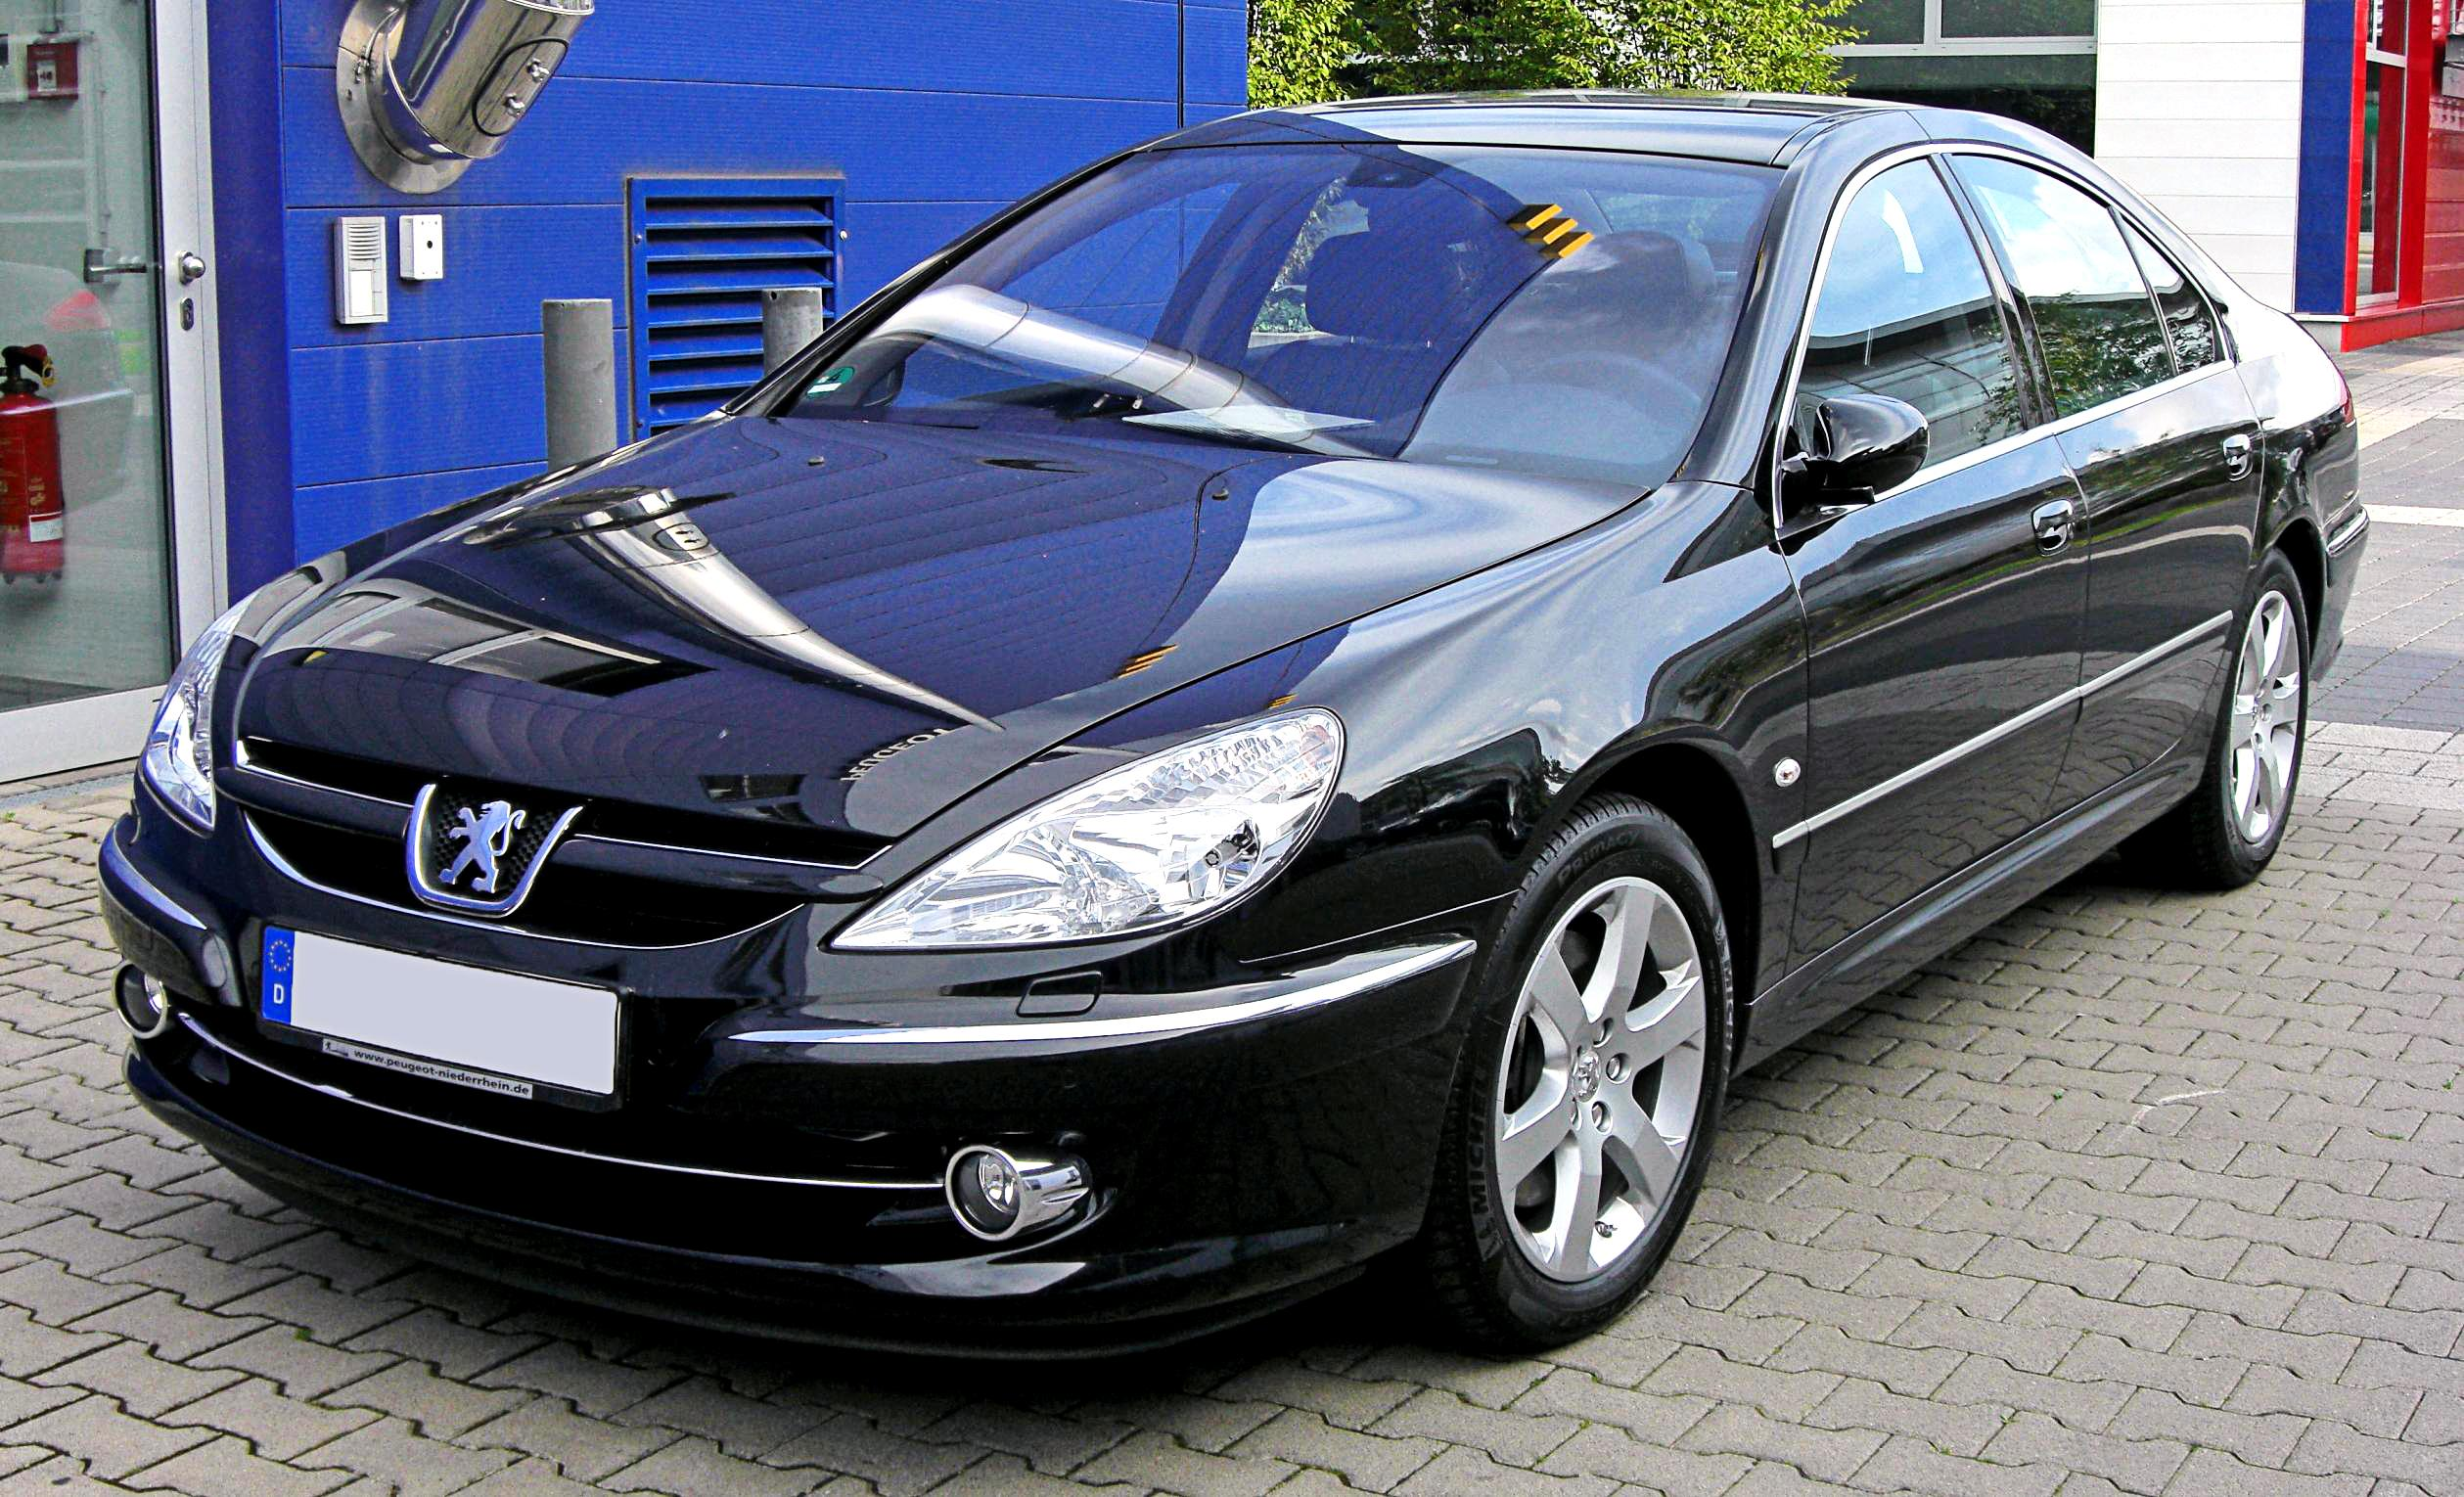 file peugeot 607 facelift 20090720 front jpg wikimedia commons. Black Bedroom Furniture Sets. Home Design Ideas